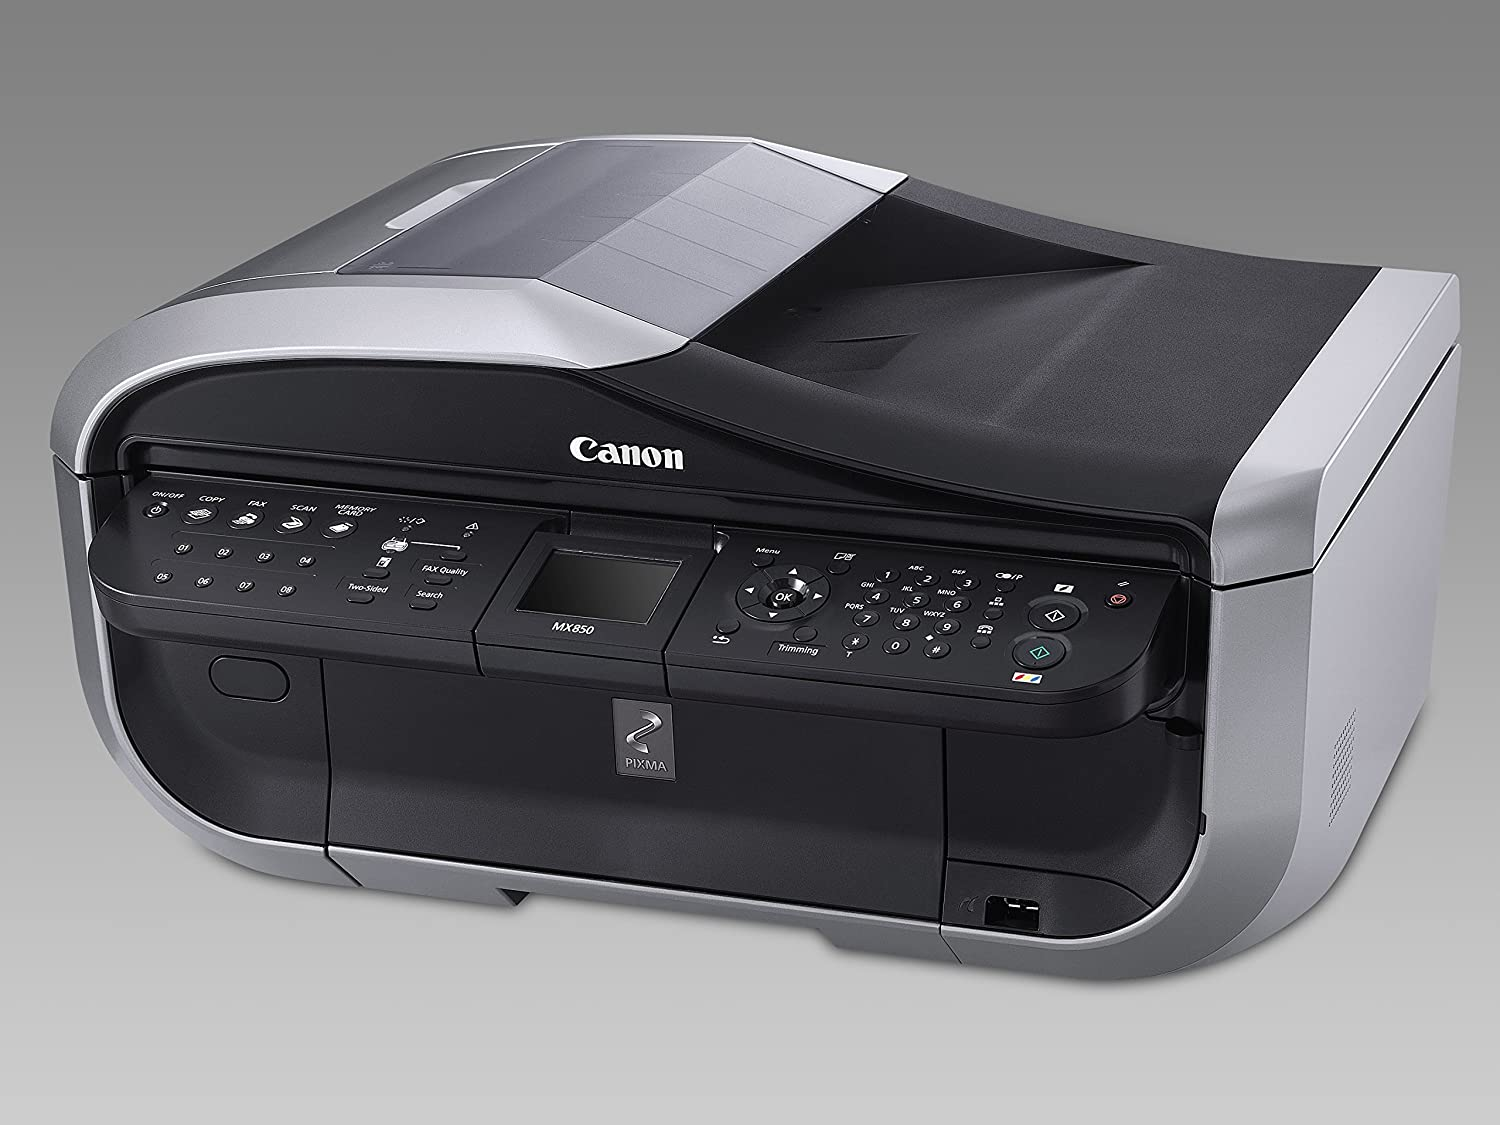 CANON MX850 AIRPRINT DRIVERS